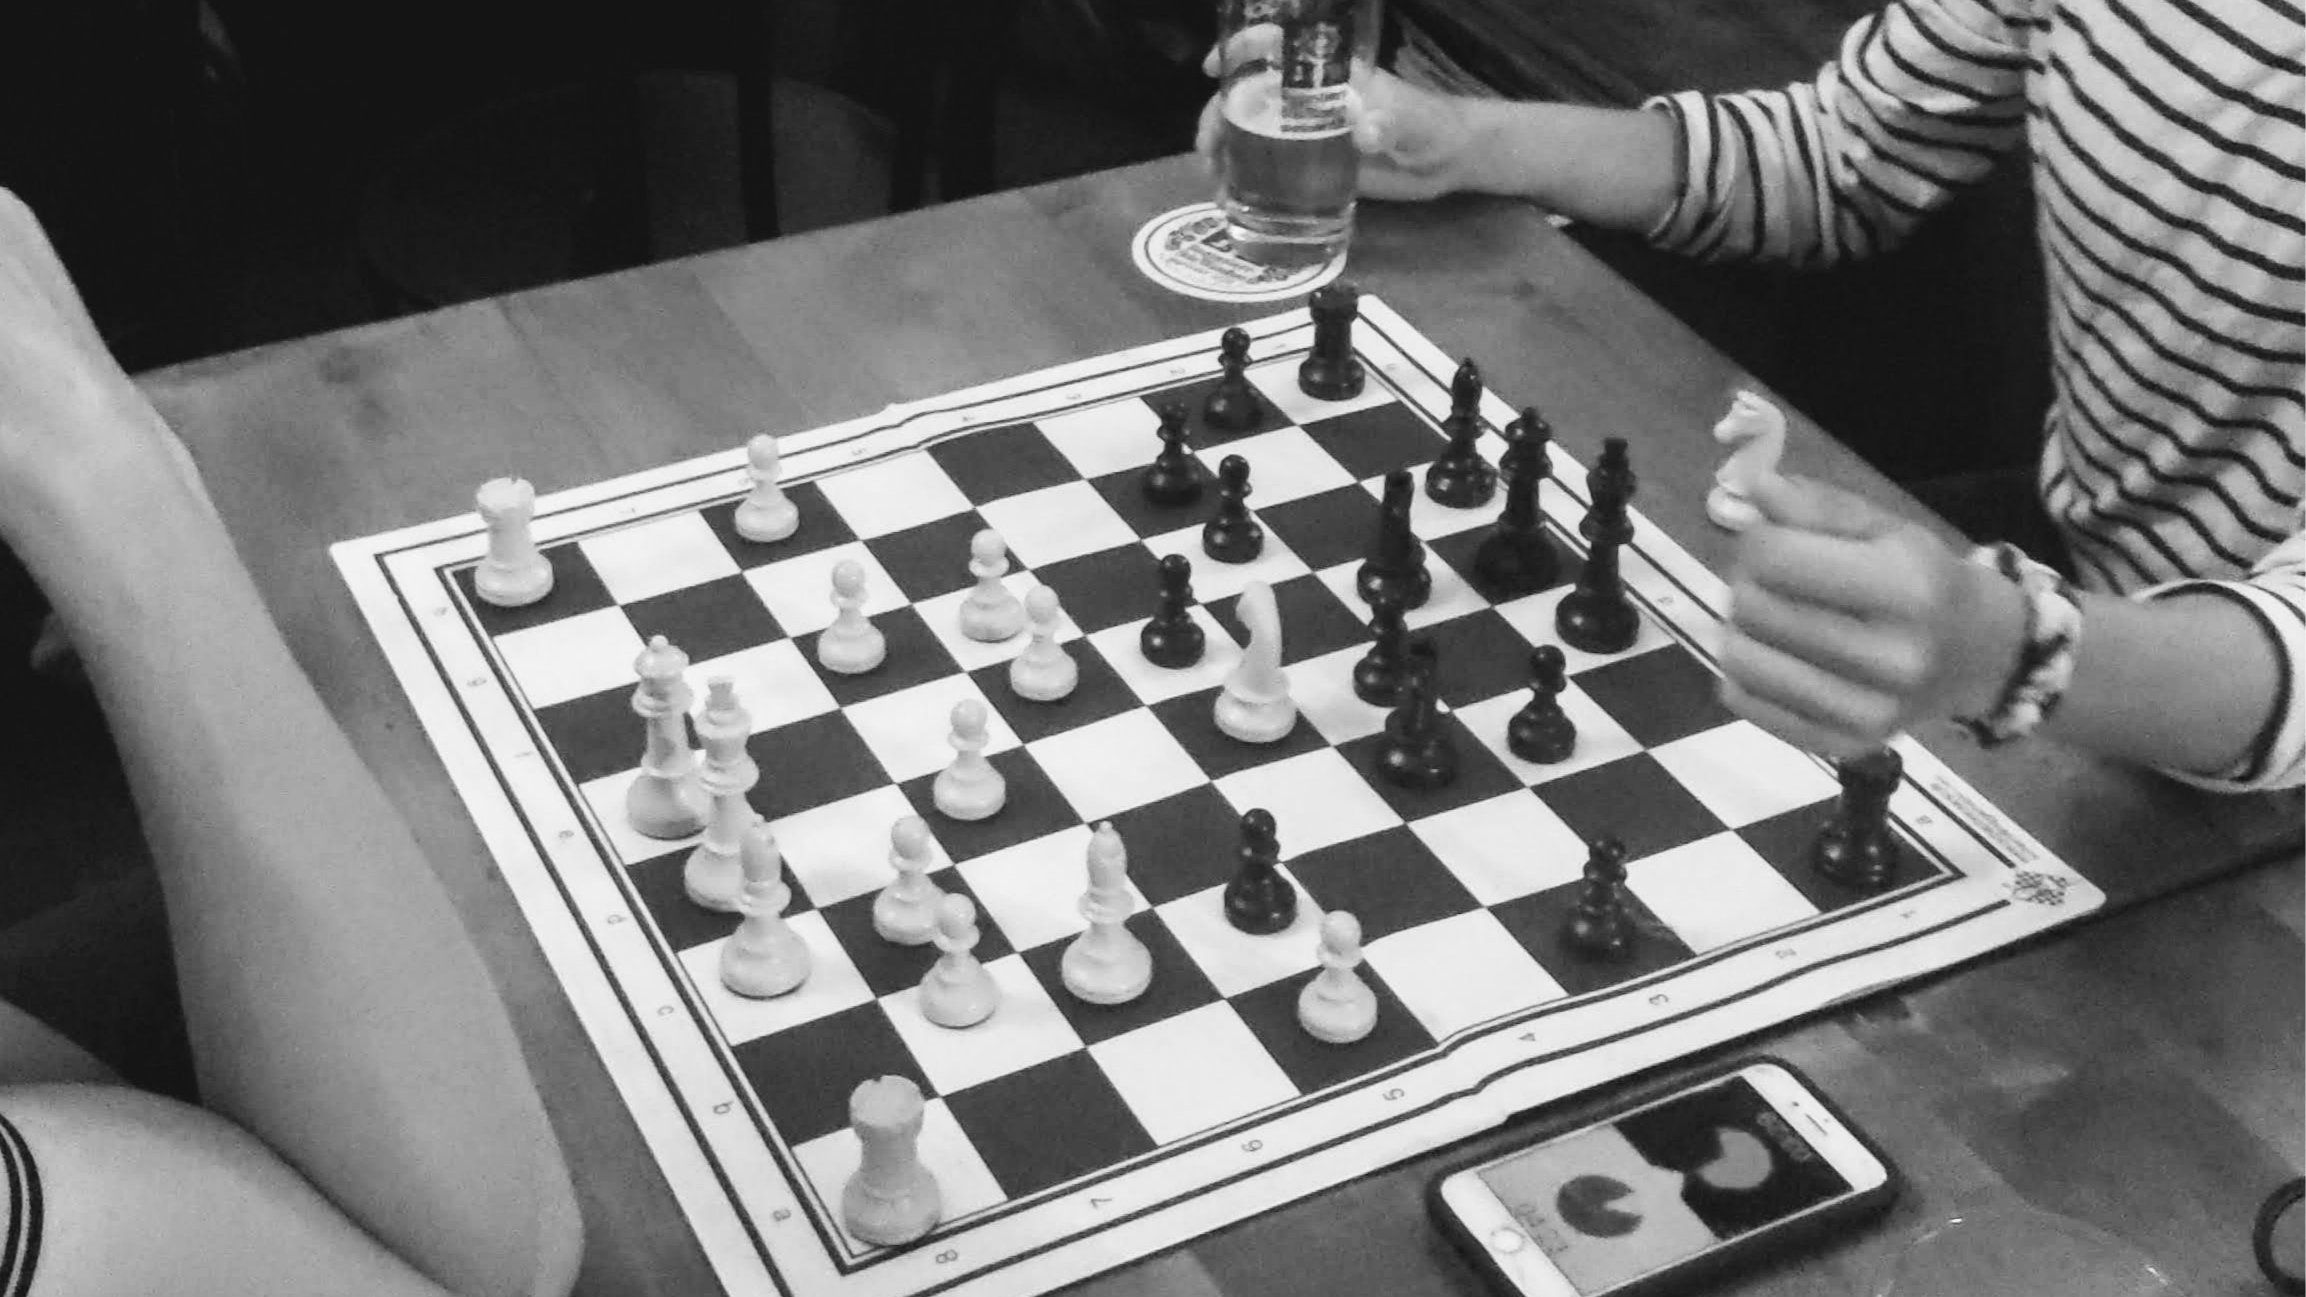 Weekly Chess evening at the Café- 16.09.2021